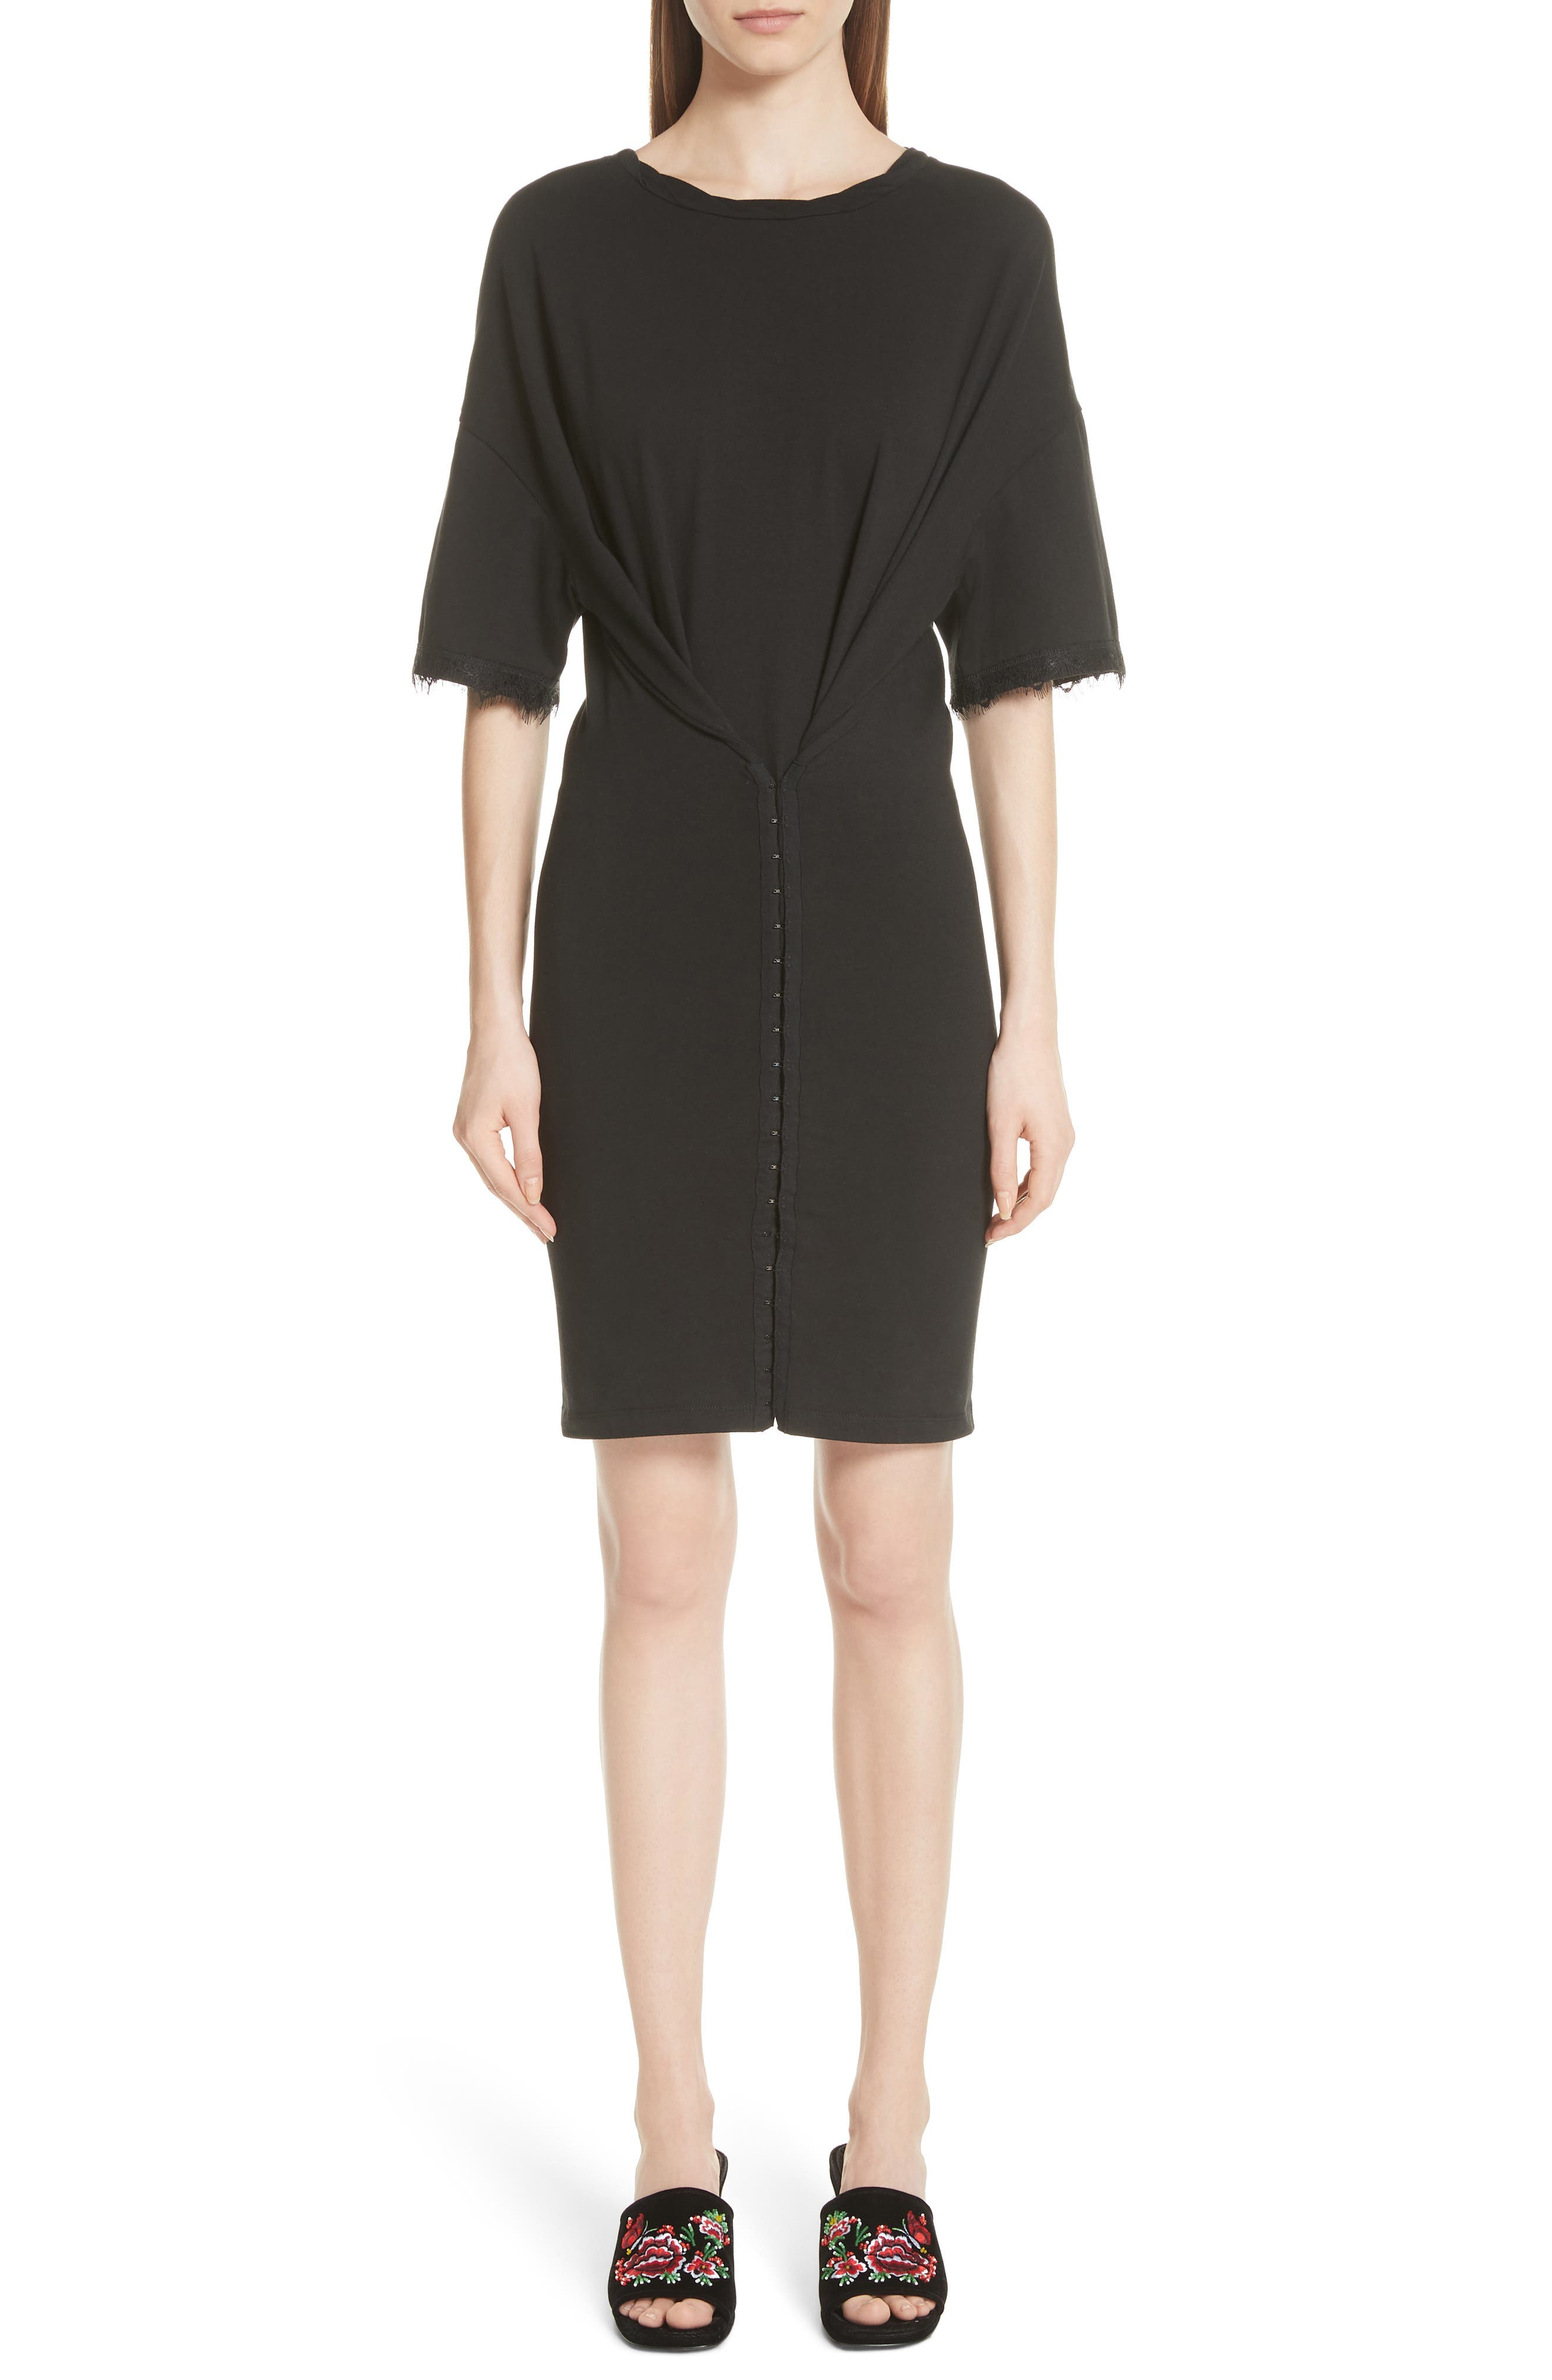 OPENING CEREMONY,                             Hook-and-Eye T-Shirt Dress,                             Alternate thumbnail 3, color,                             014